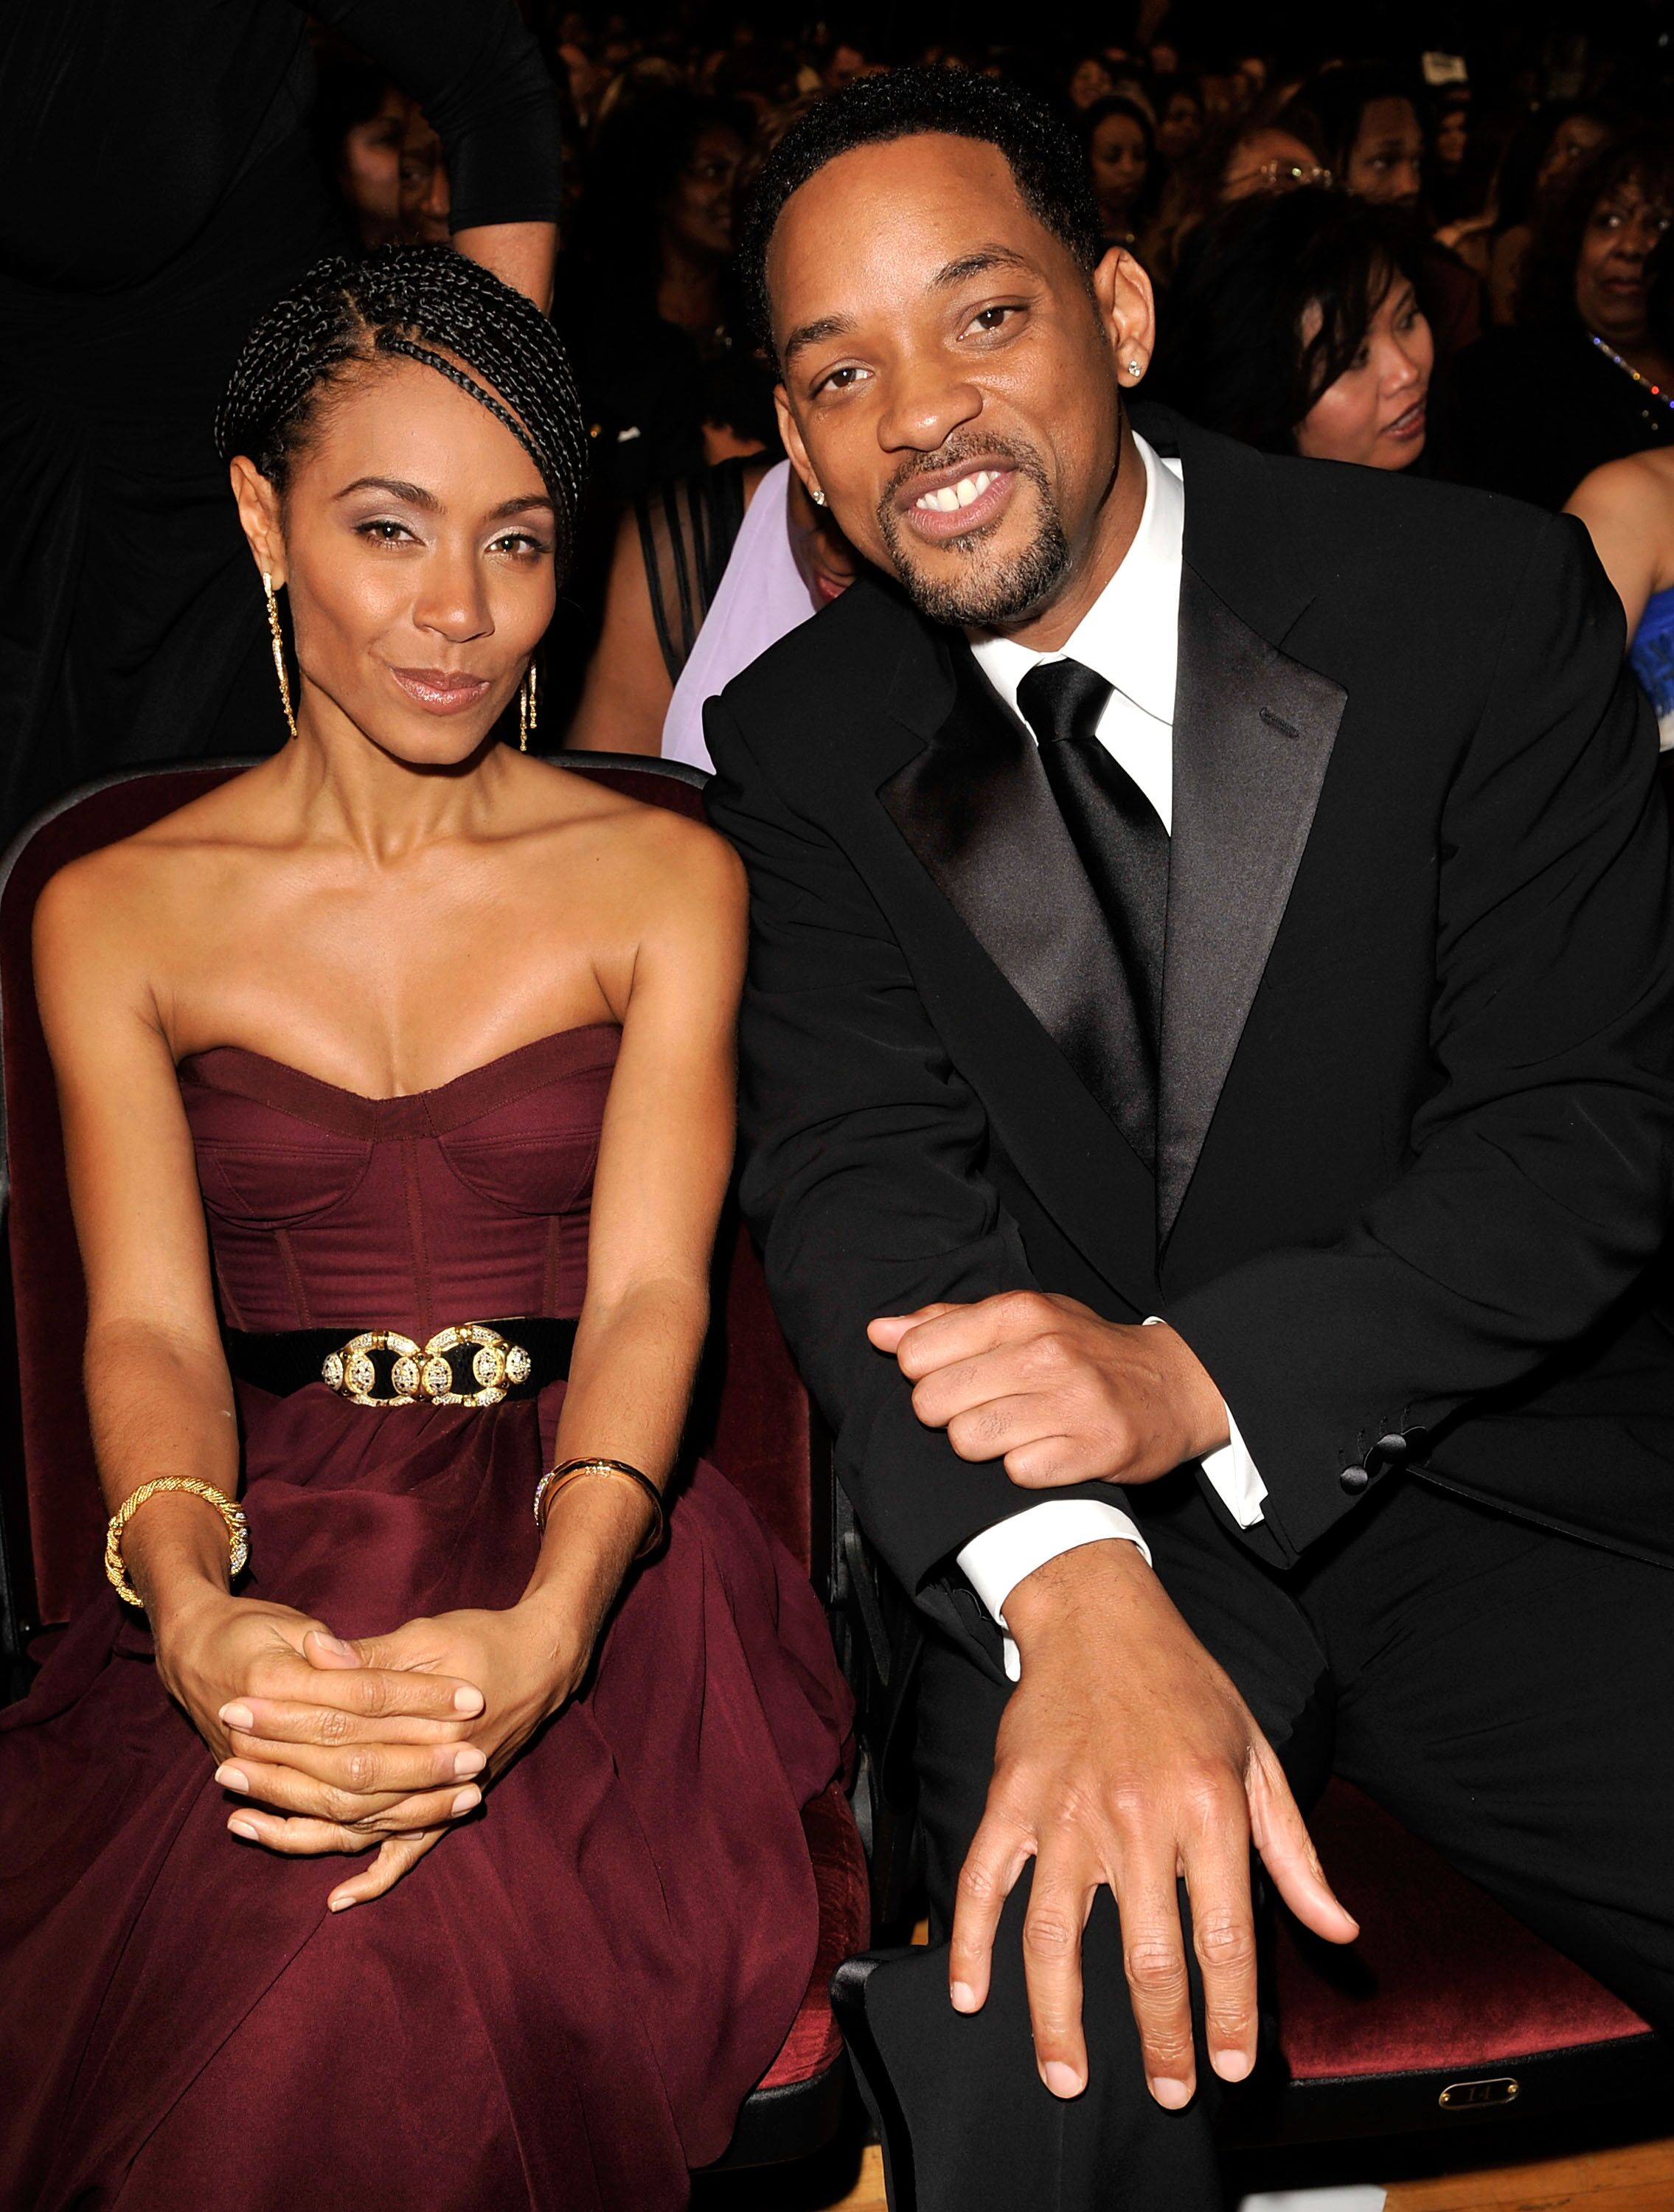 Jada Pinkett Smith and Will Smith at the 40th NAACP Image Awards/ Source Getty Images